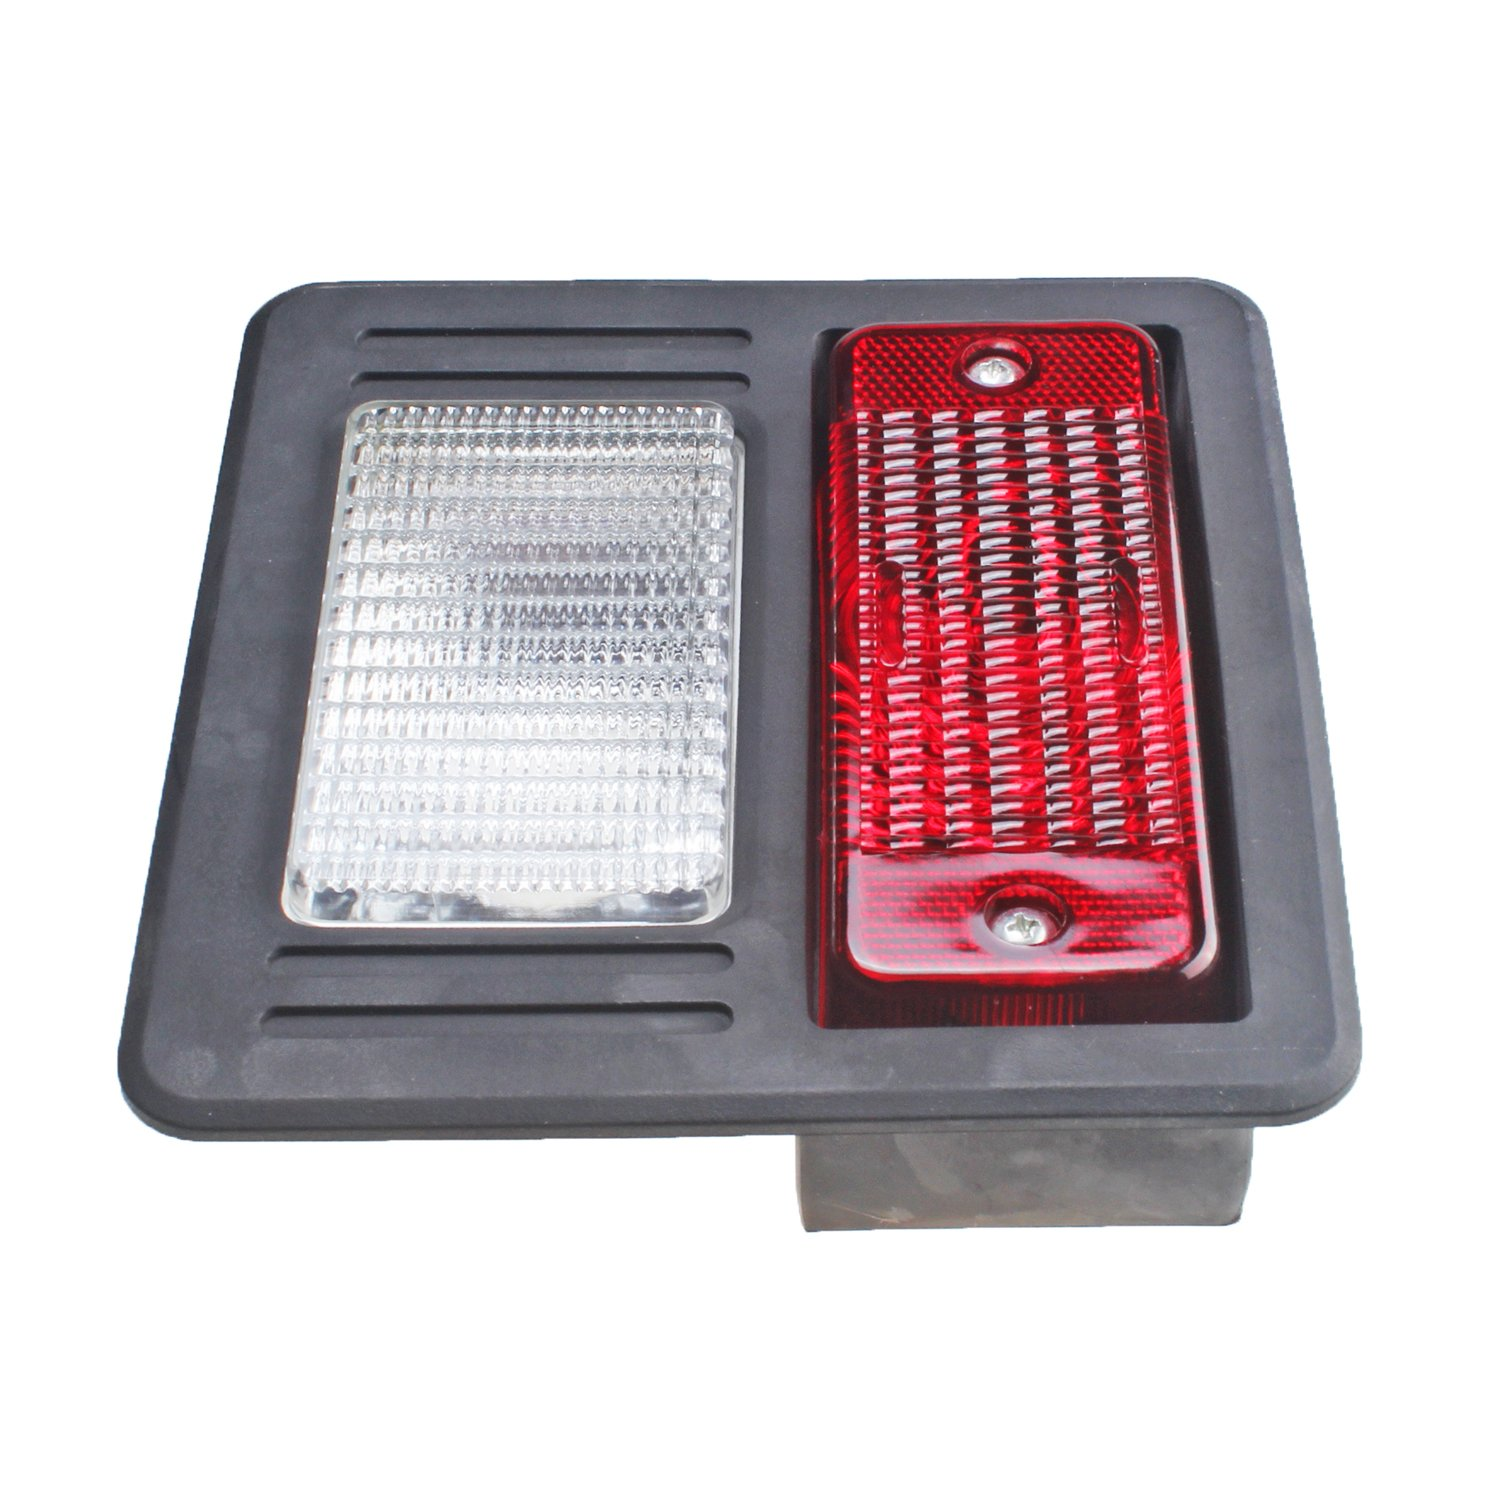 Mover Parts Tail Light Assembly 6670284 for Bobcat S650 S750 S770 S850 T110 T140 T180 T190 T200 T250 T300 T320 T550 T590 T630 T650 T750 T770 T870